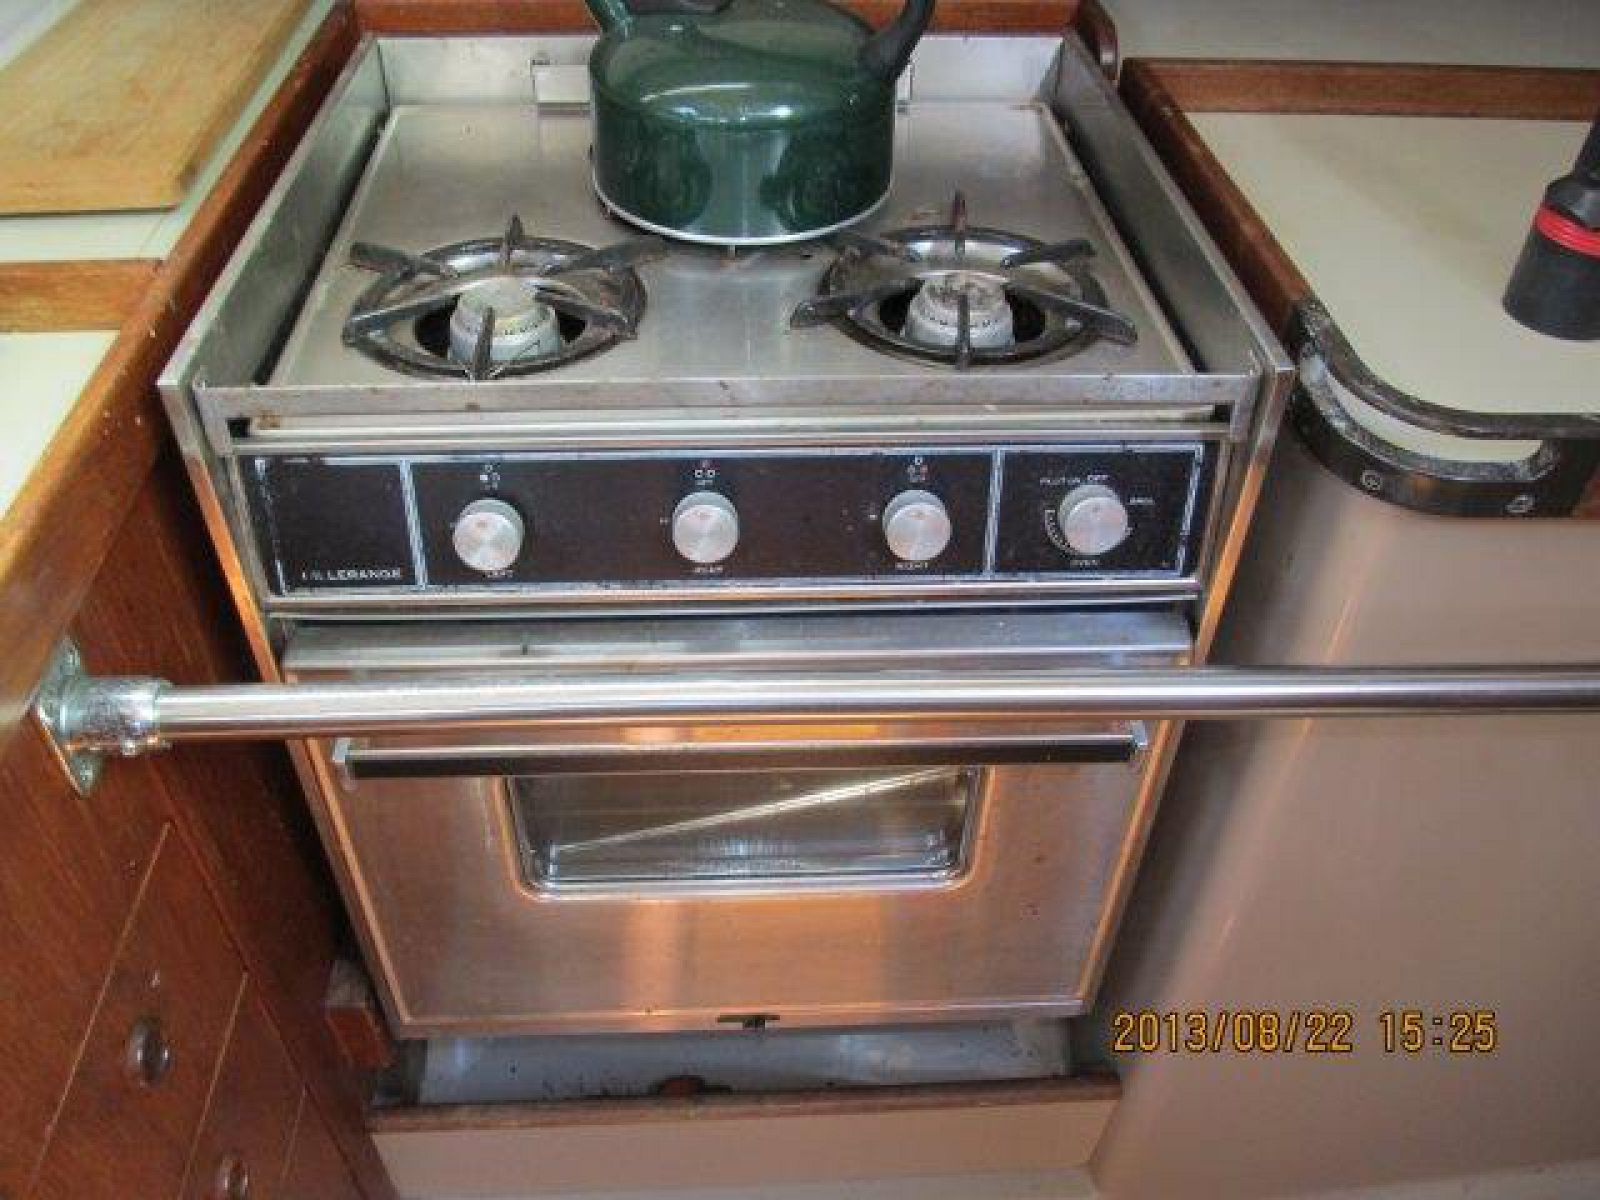 Galley Stove